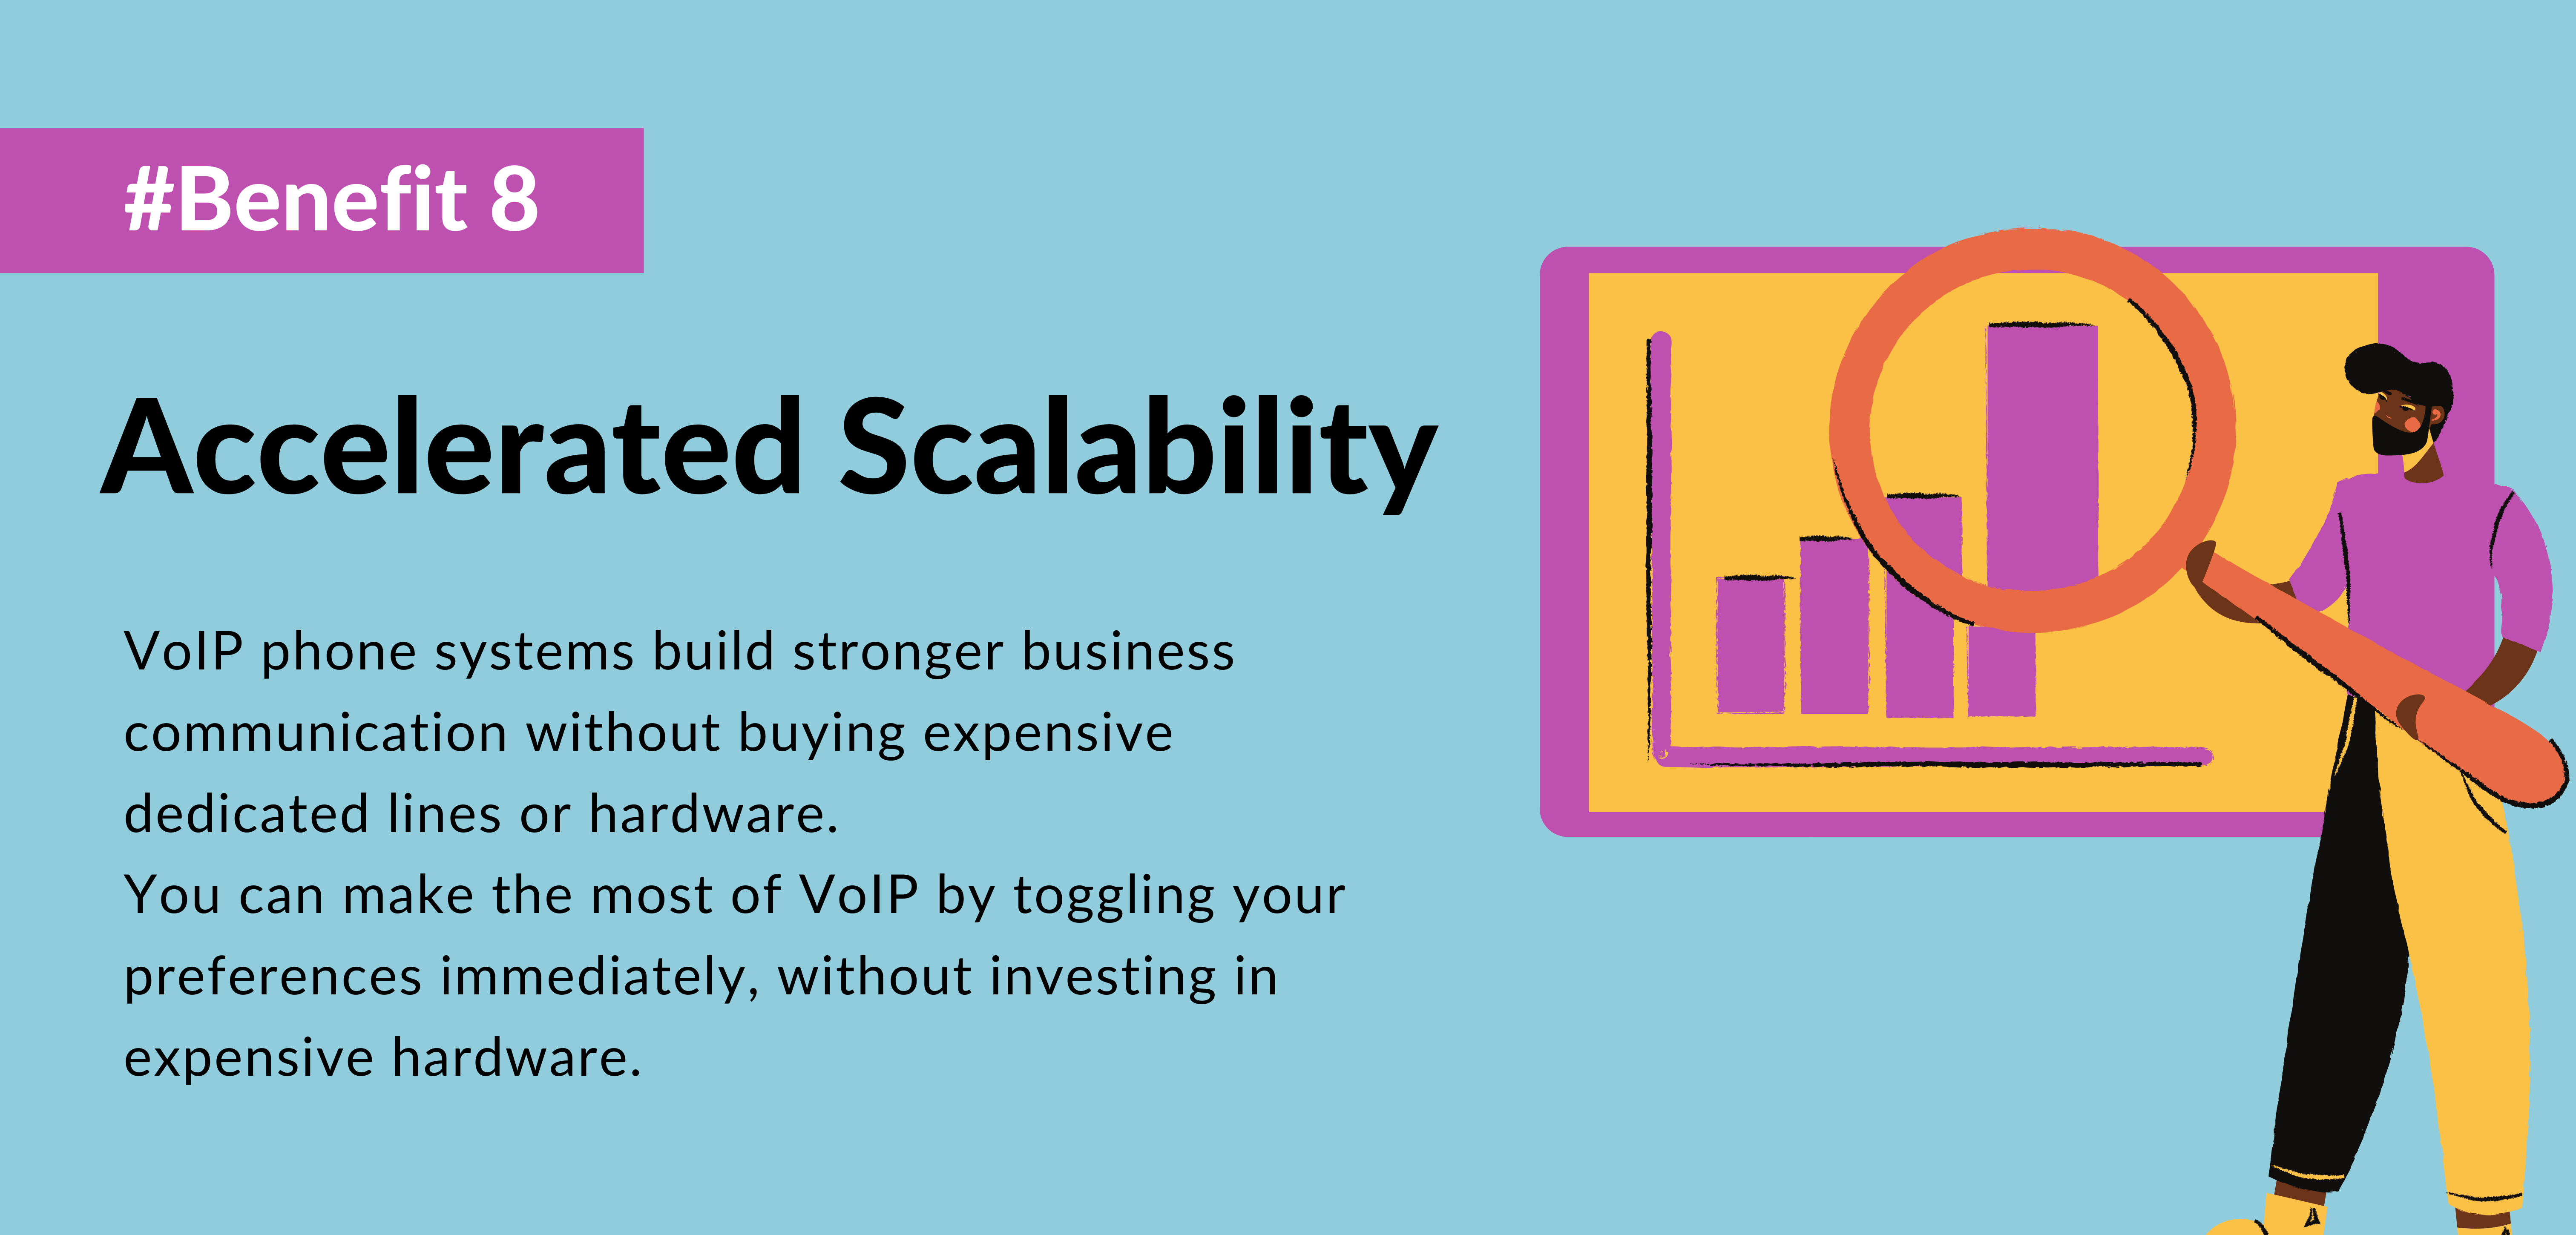 eighth benefit of using voip is Accelerated Scalability- telecloud